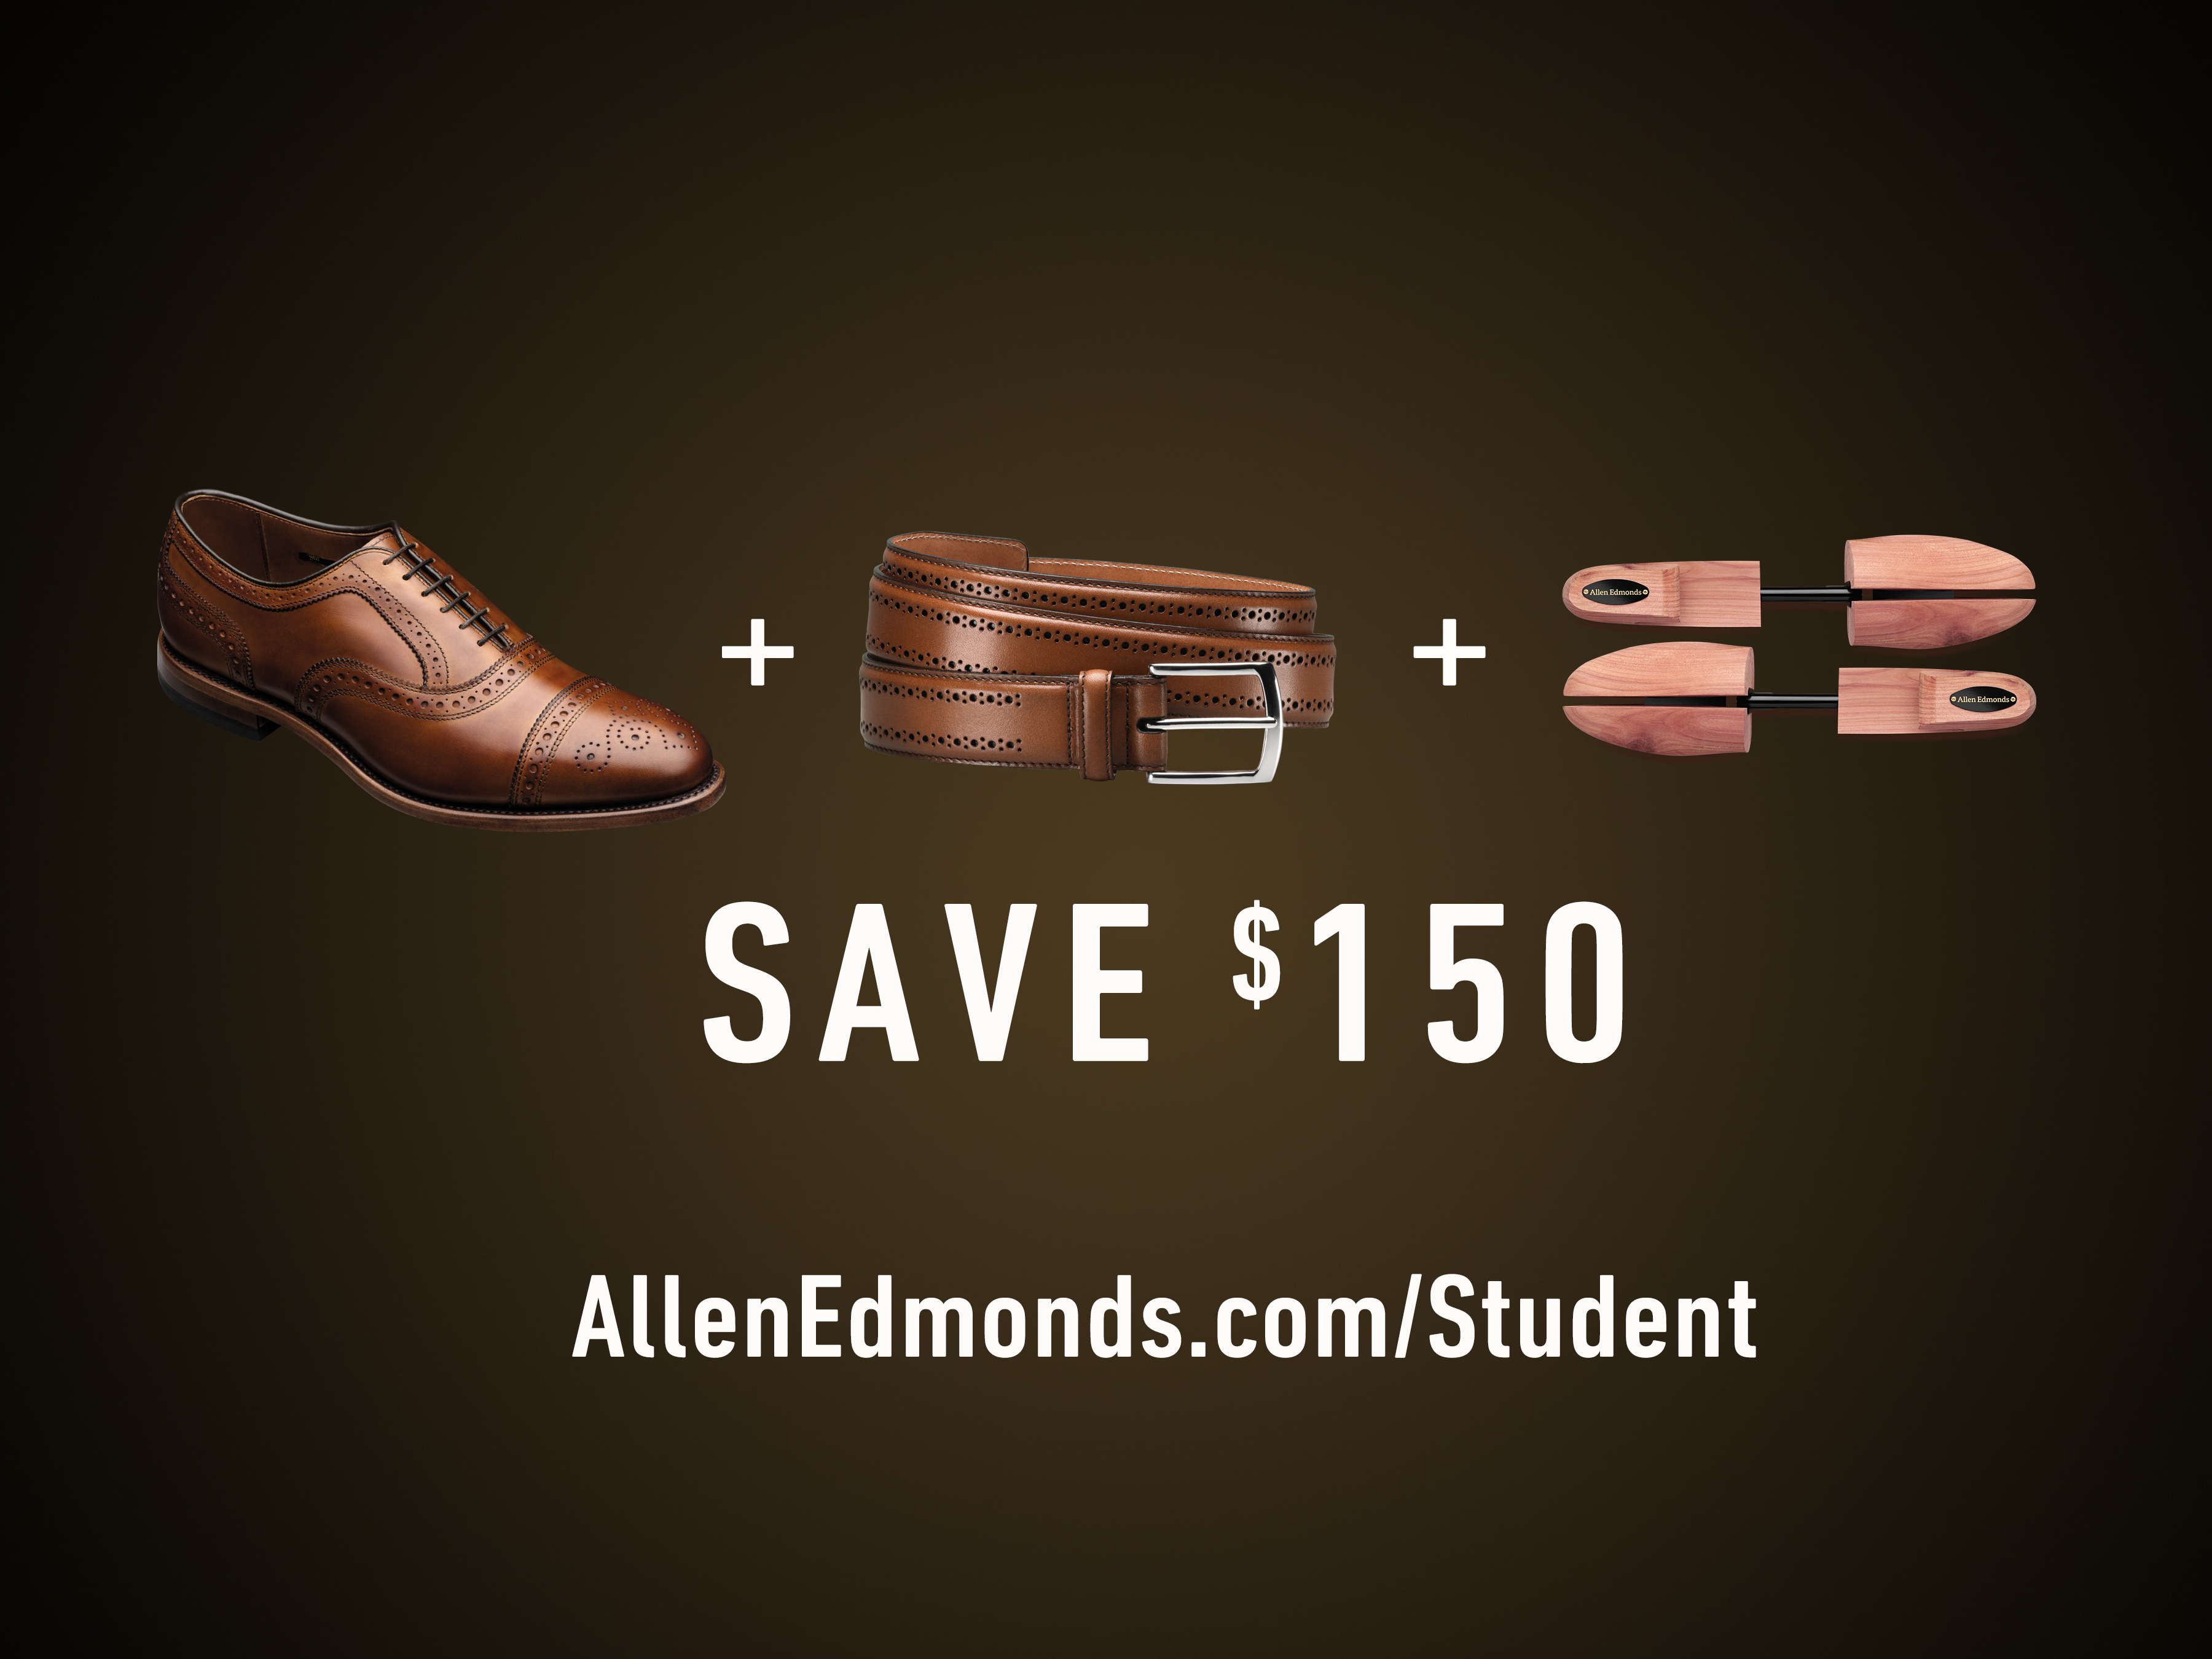 allen edmonds student interview offer helps millennial men dress allen edmonds student interview offer helps millennial men dress for success business wire